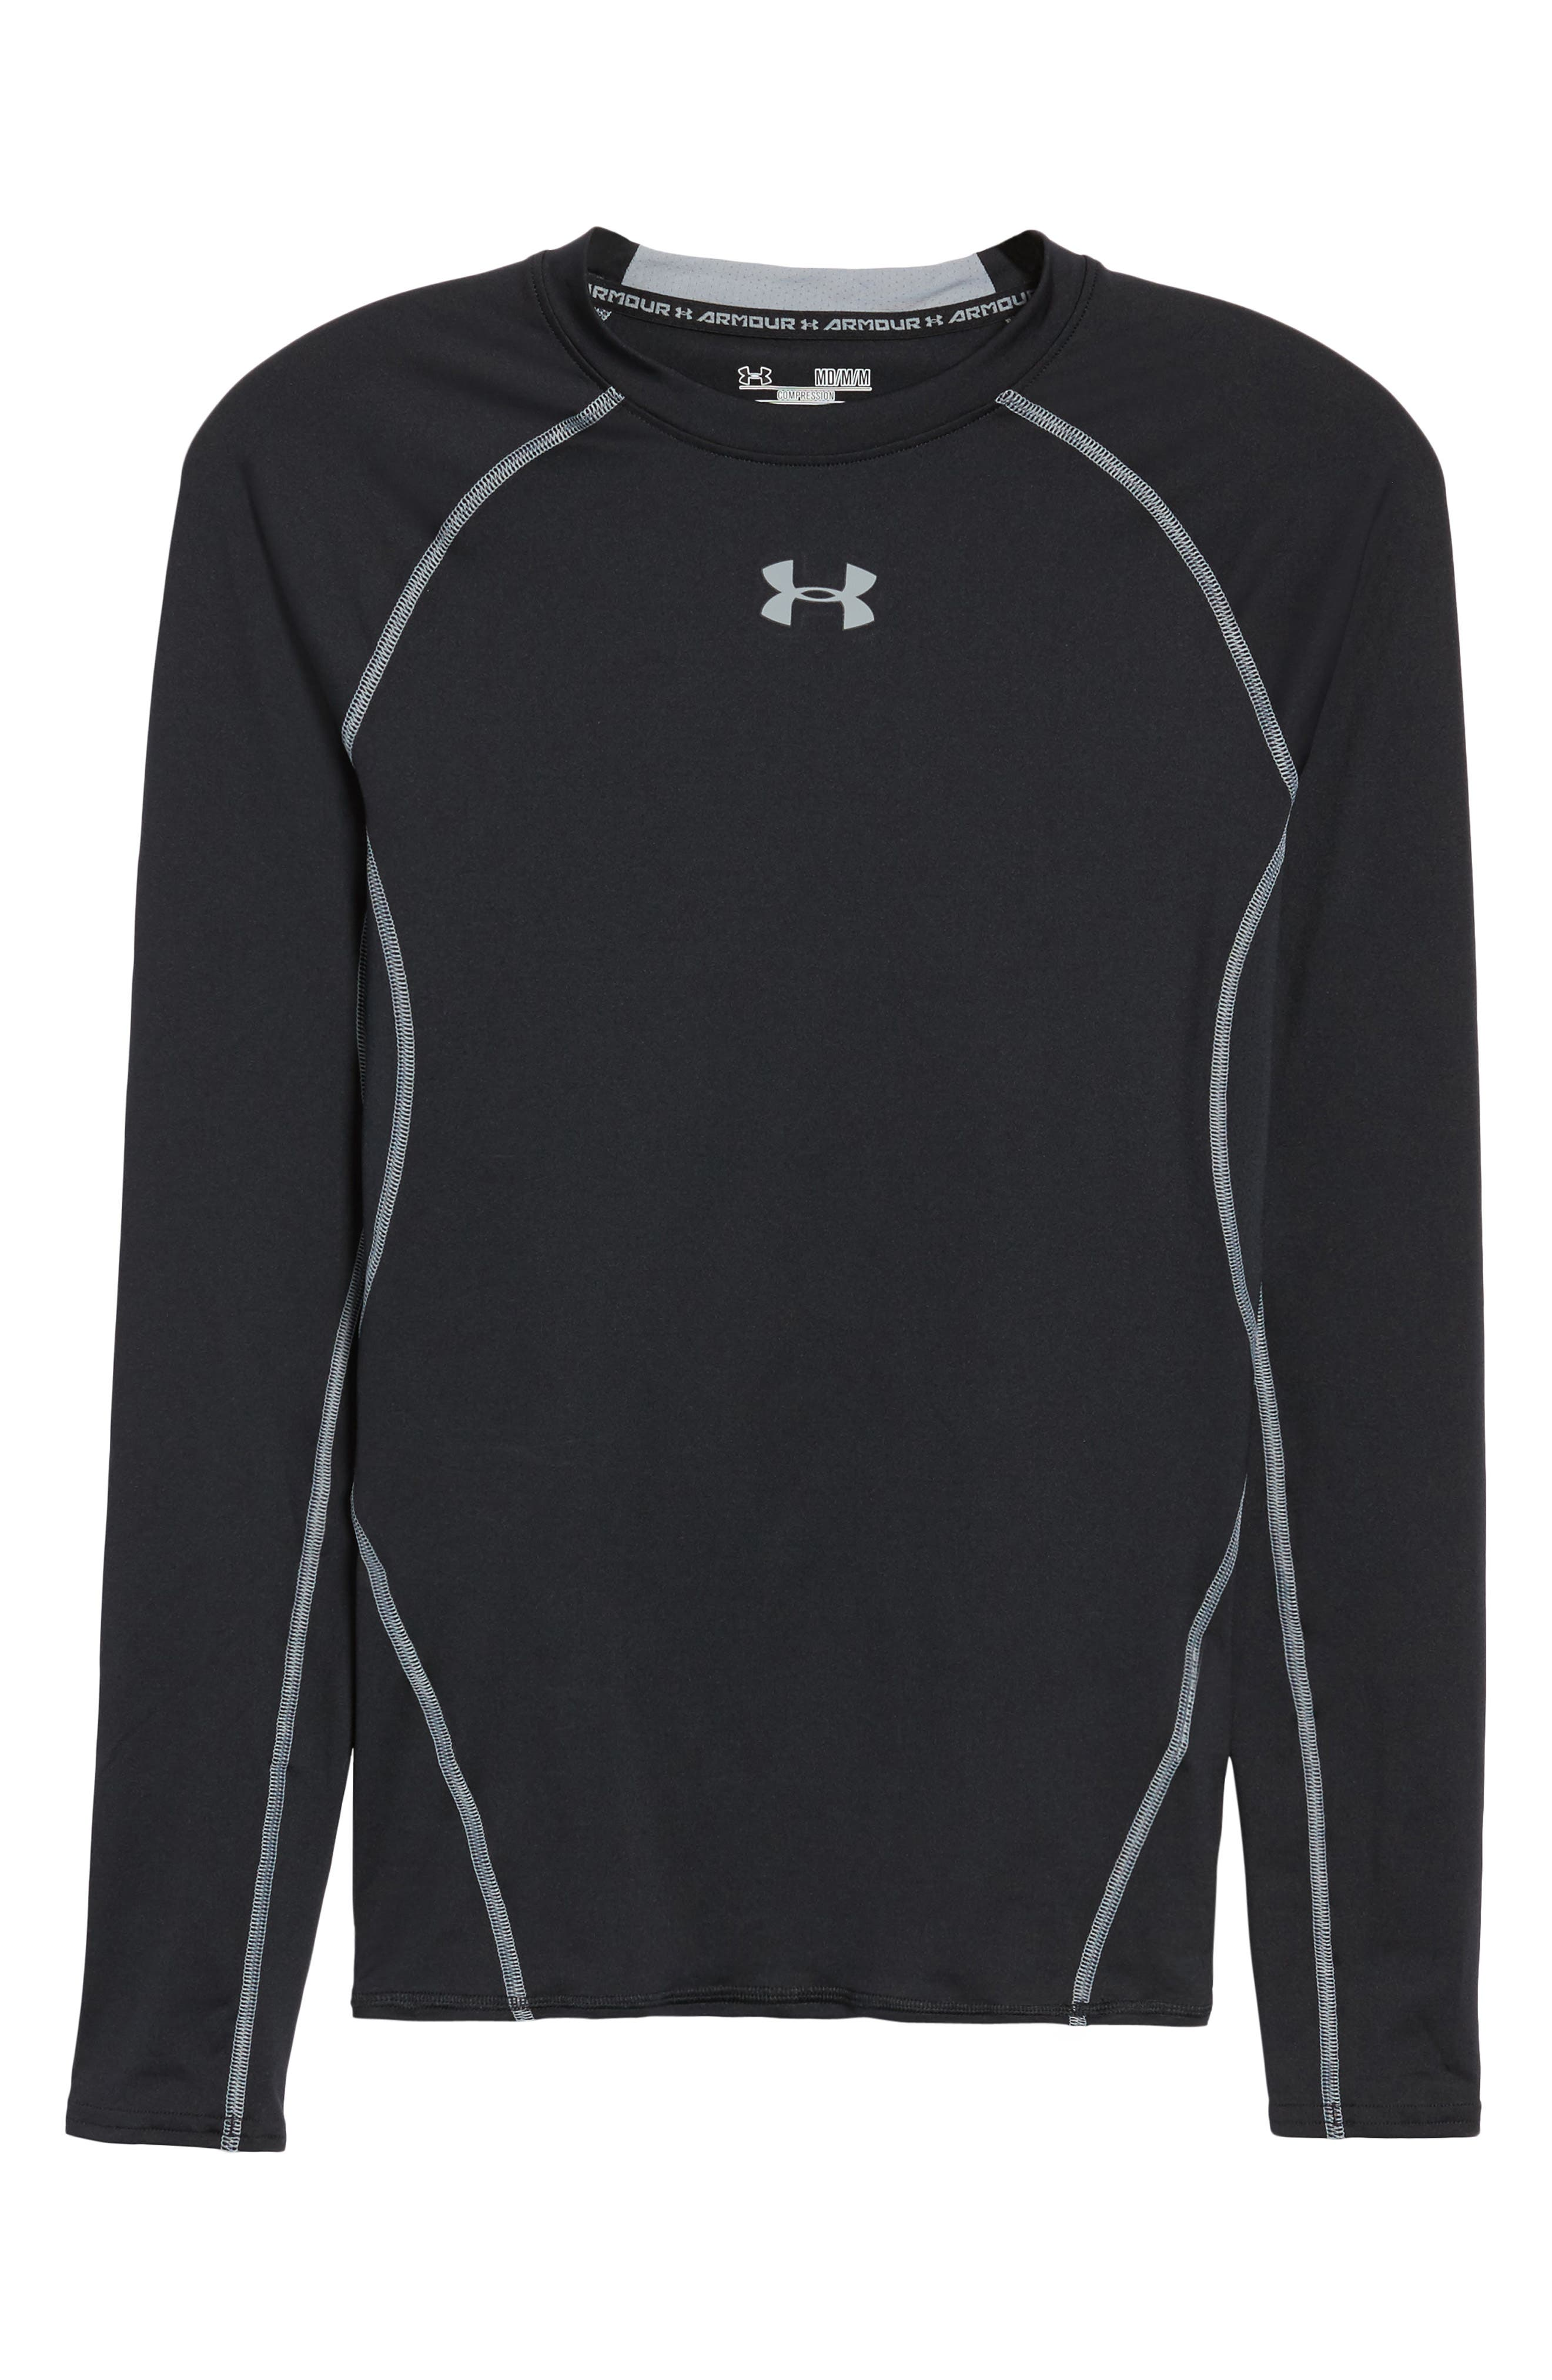 HeatGear<sup>®</sup> Compression Fit Long Sleeve T-Shirt,                             Alternate thumbnail 6, color,                             BLACK/ STEEL